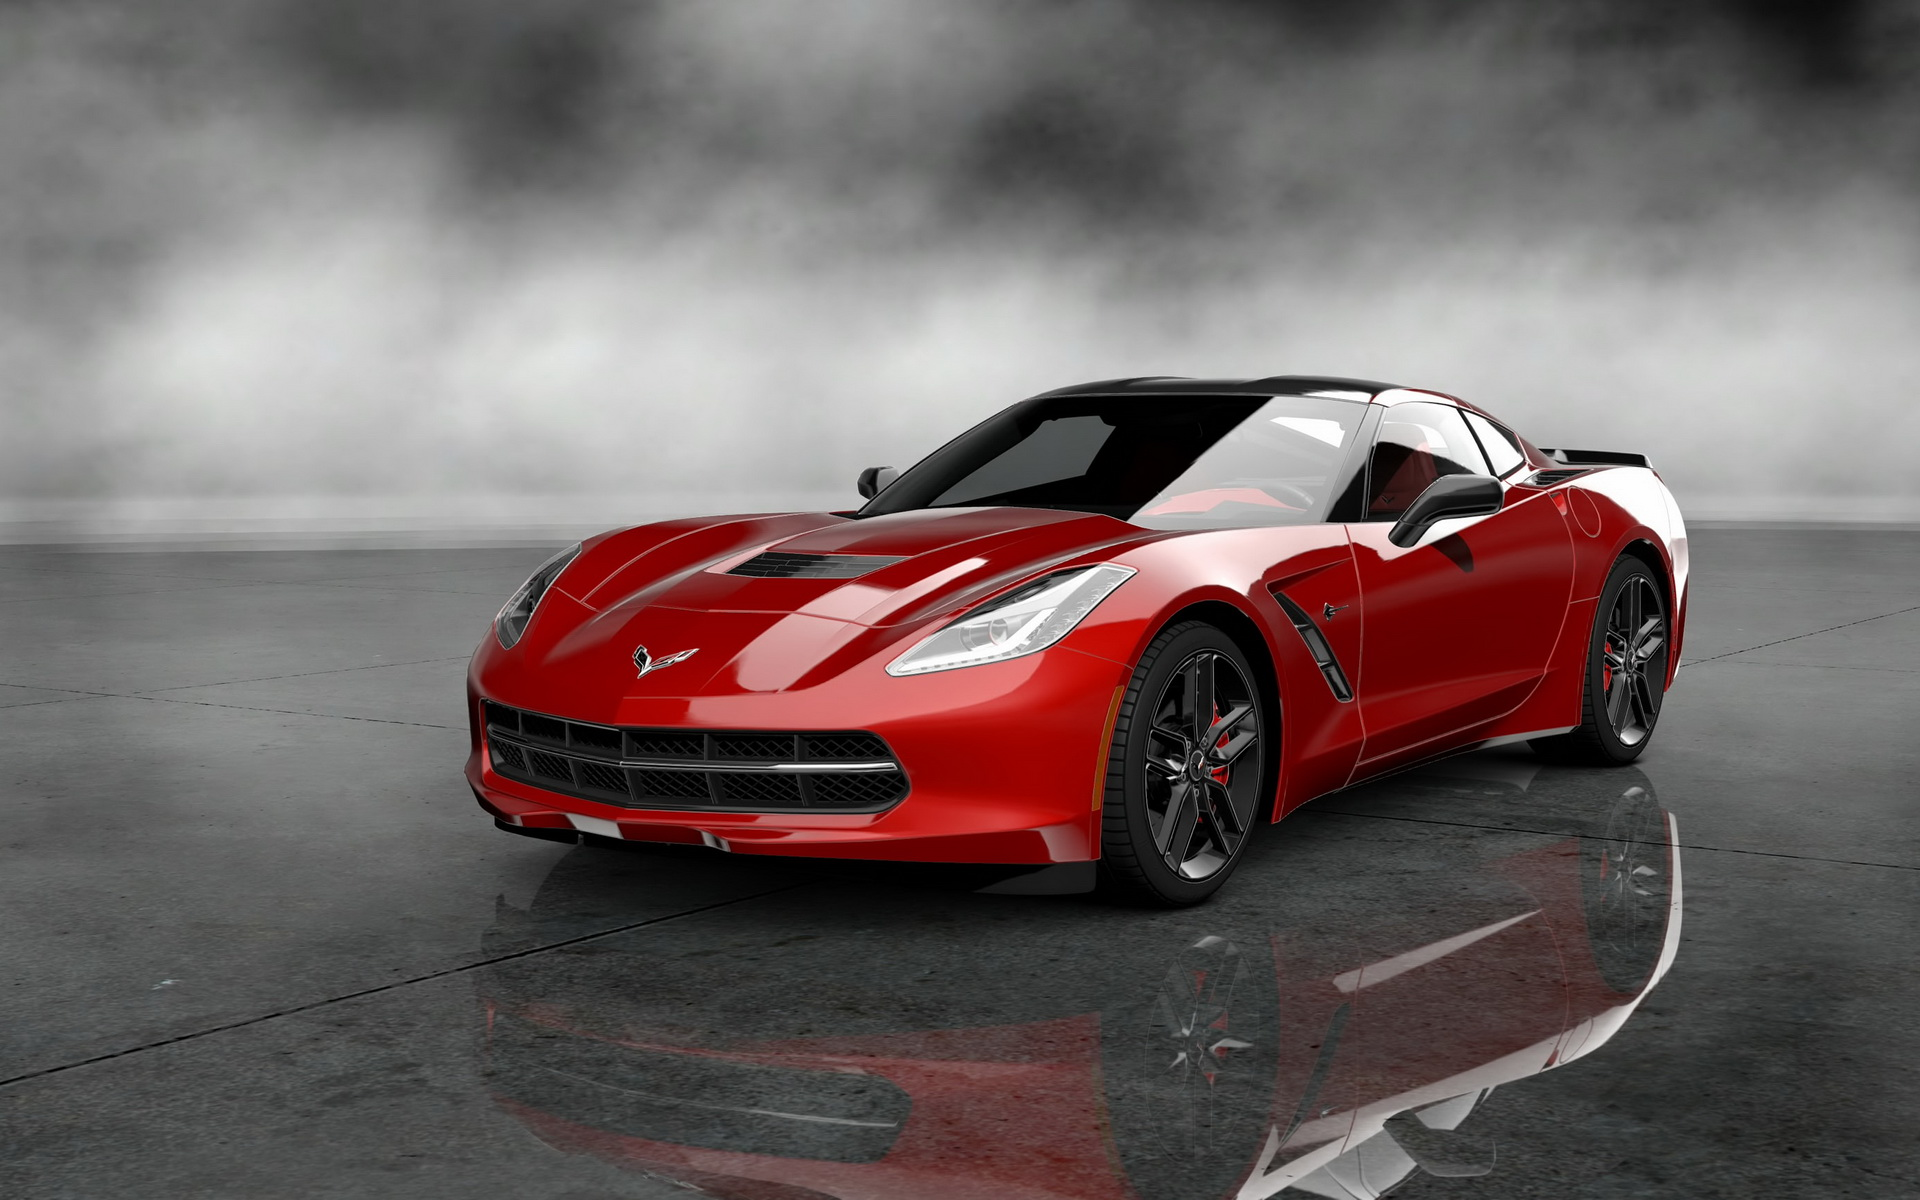 Corvette Stingray Wallpaper 22510 1920x1200 px HDWallSourcecom